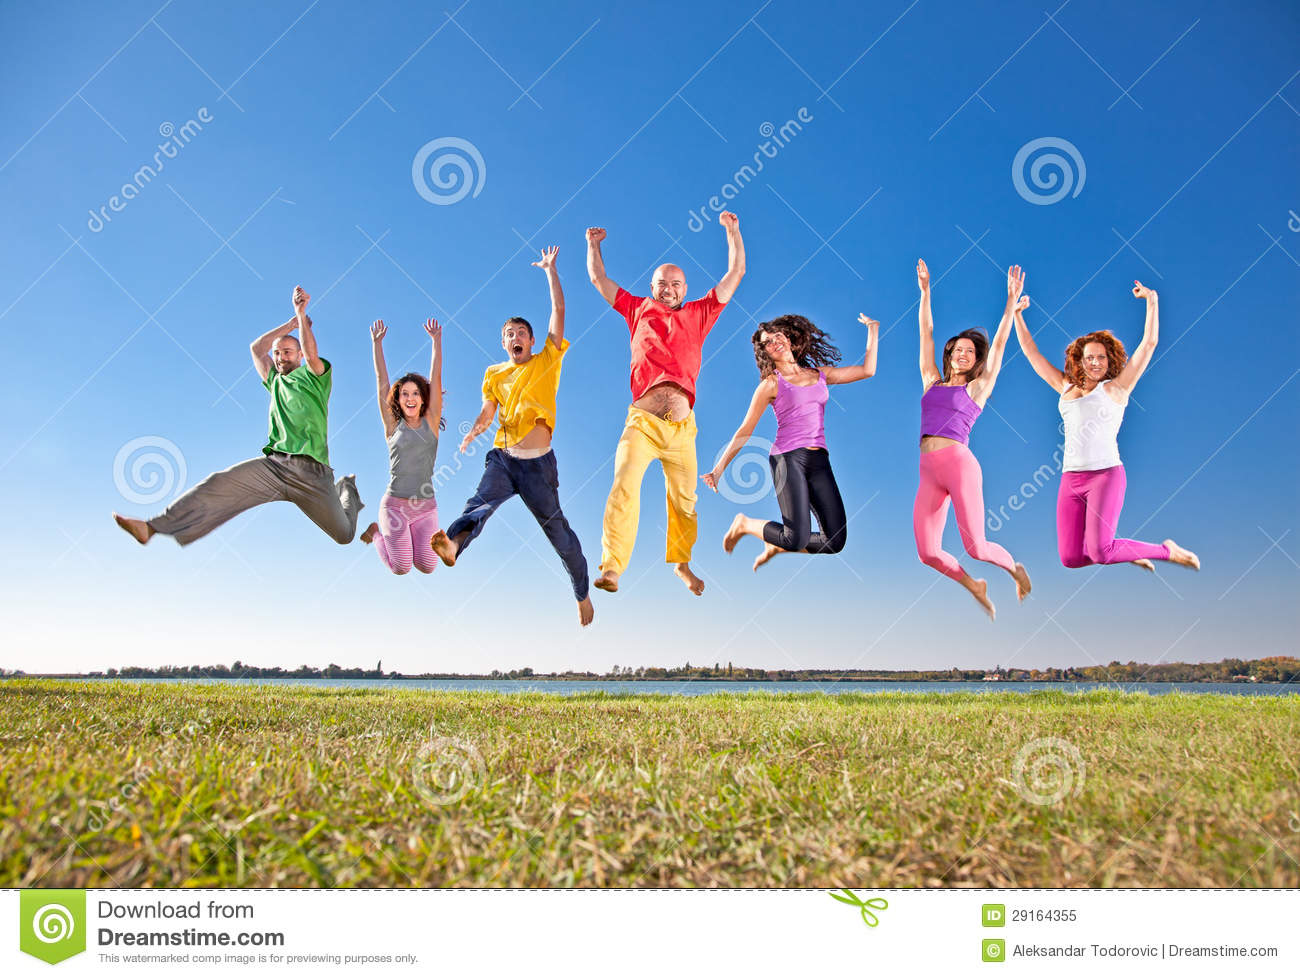 happy-smiling-group-jumping-people-29164355.jpg